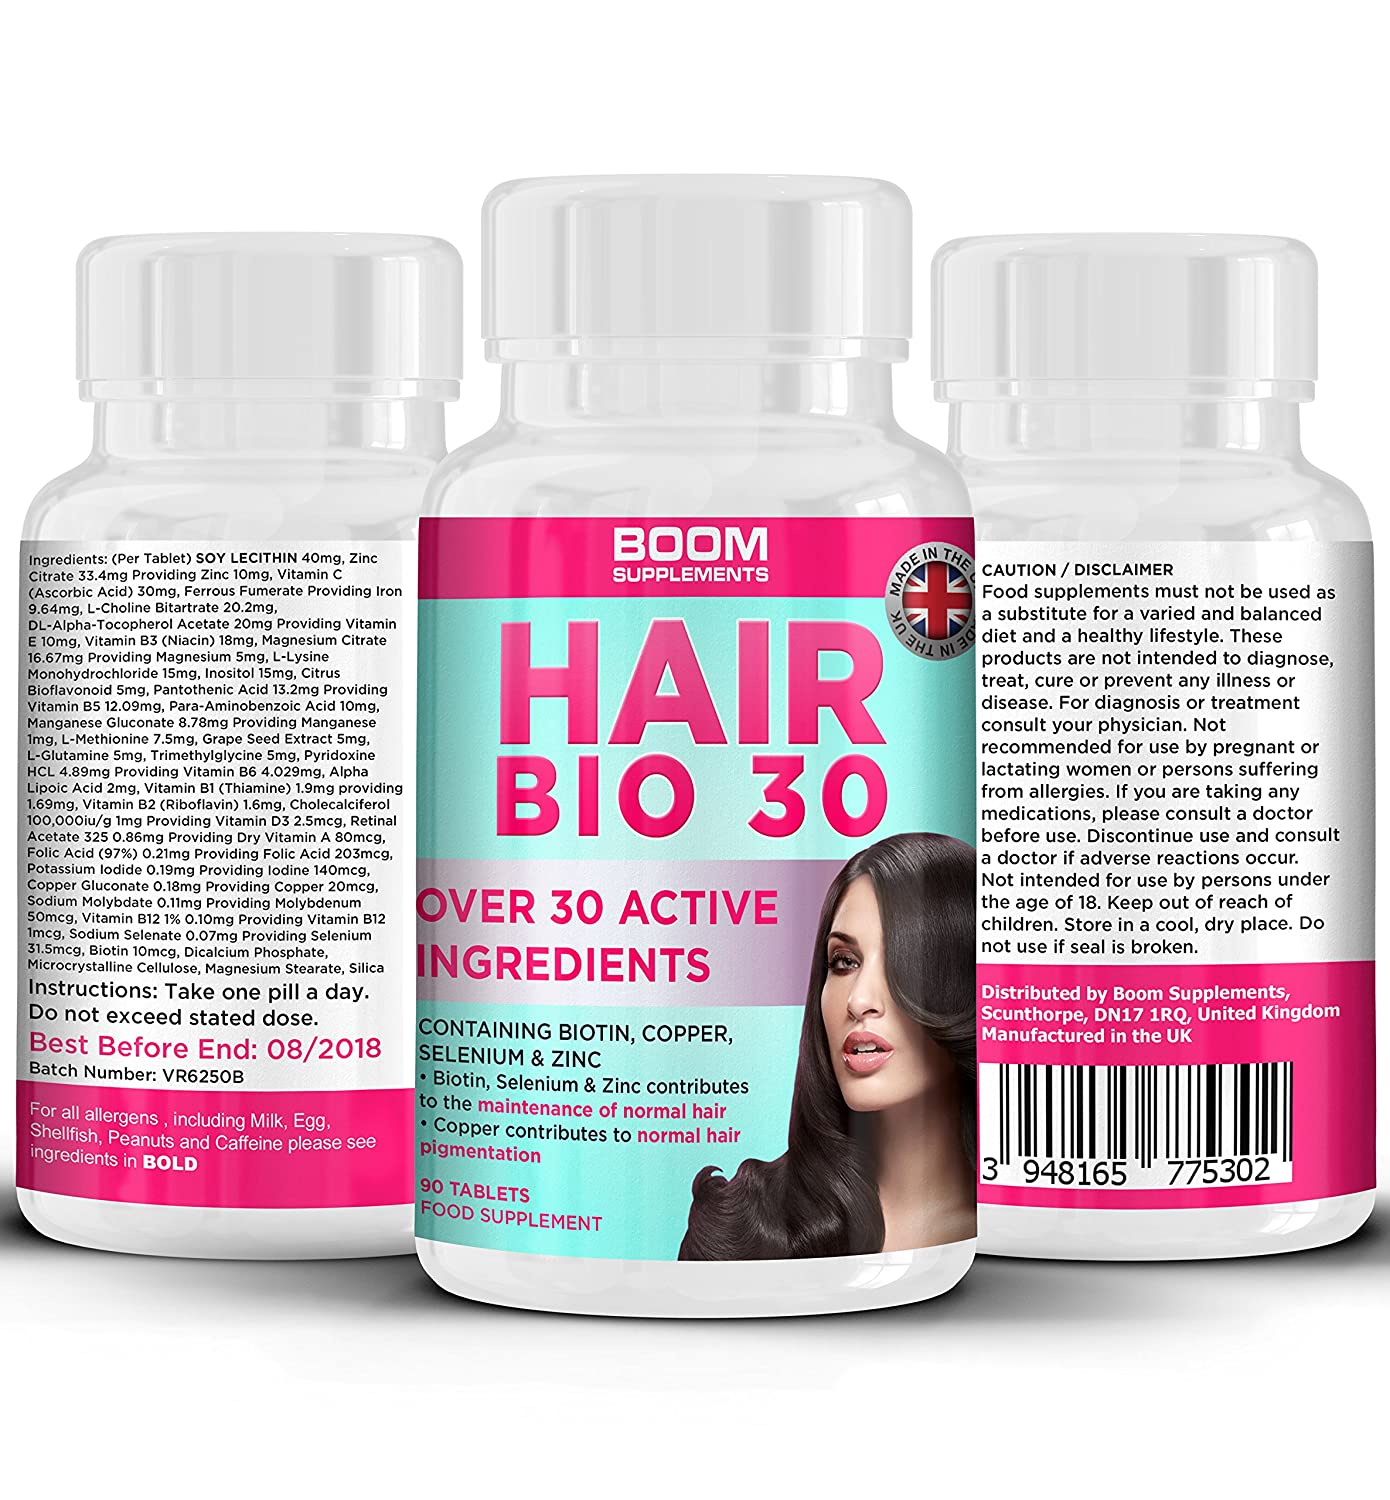 |Hair Growth Supplements || Hair Growth Tablets || Biotin Hair Treatment || 90 Natural Hair Thickener Tablets || 3 Month Supply || Helps Grow Hair For Women || Achieve Thicker, Fuller Hair FAST || Safe And Effective || Best Selling Hair Growth Pills || Man